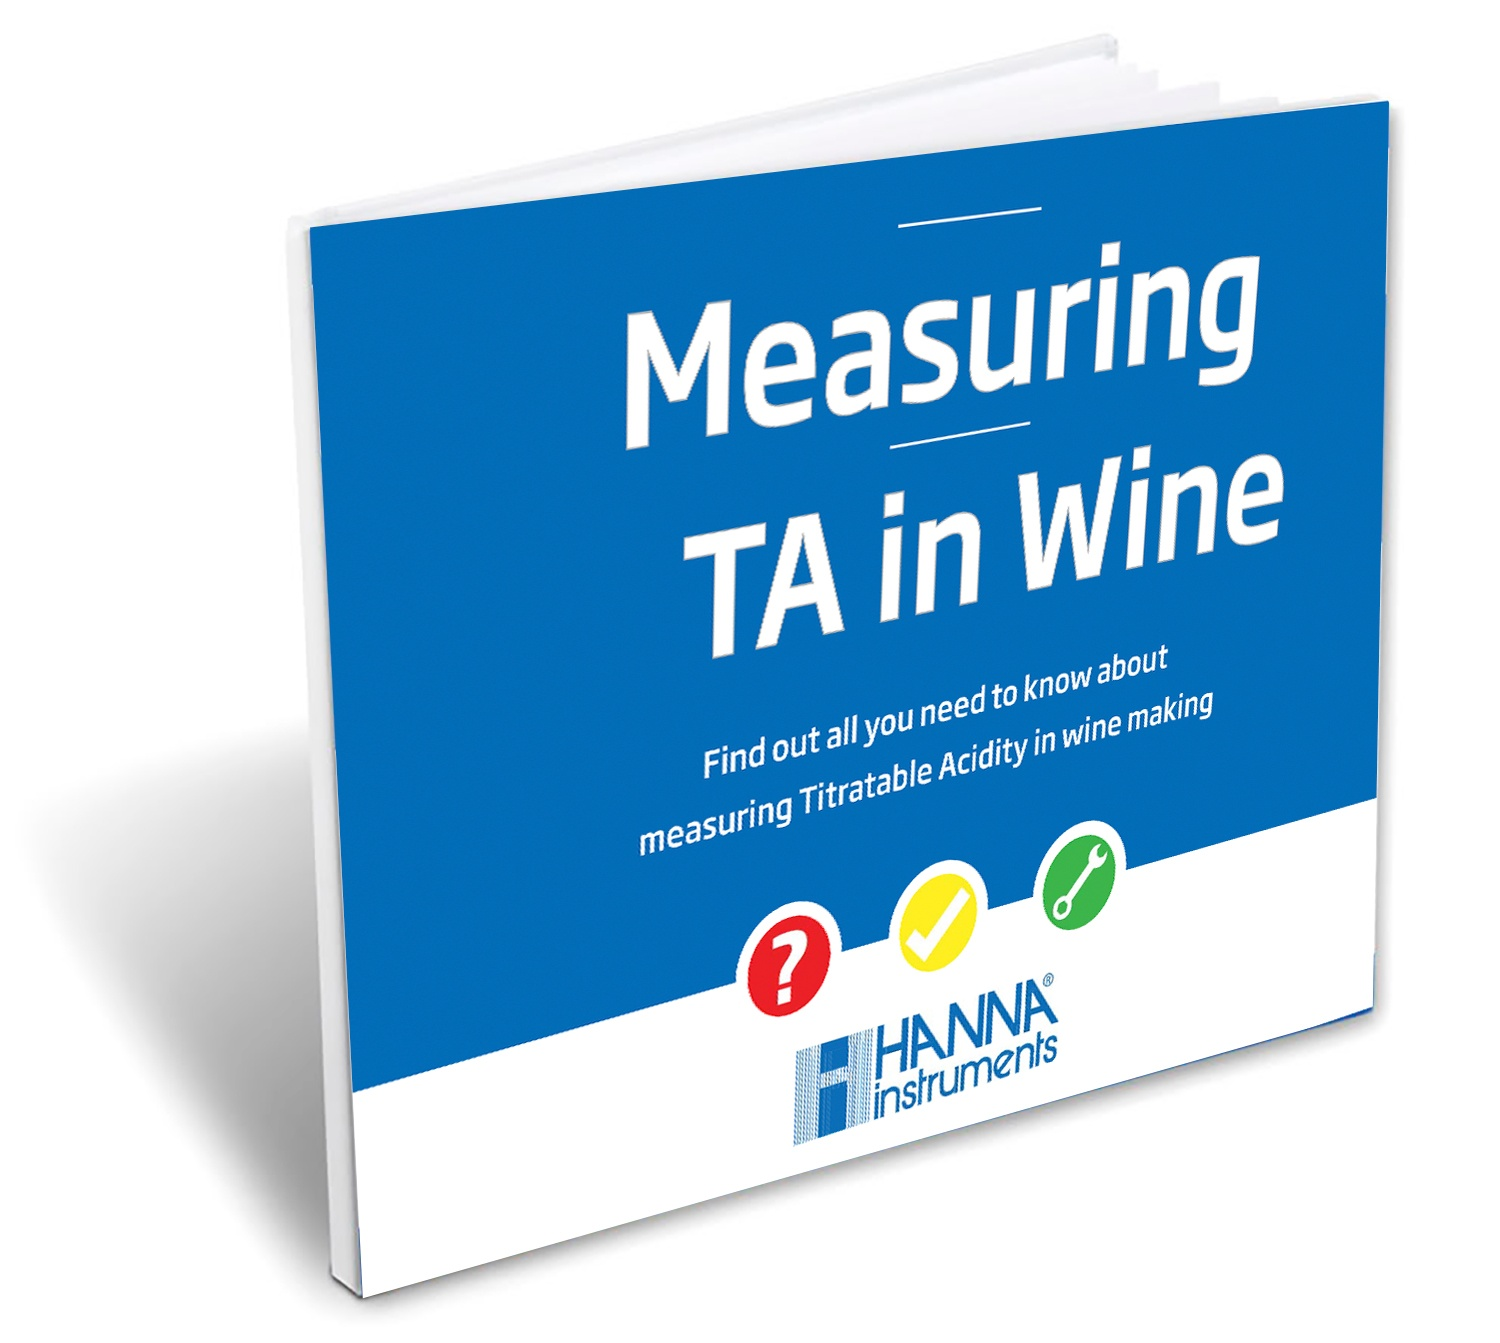 Measuring TA (Titratable Acidity) in Wine - Hanna Instruments eBook